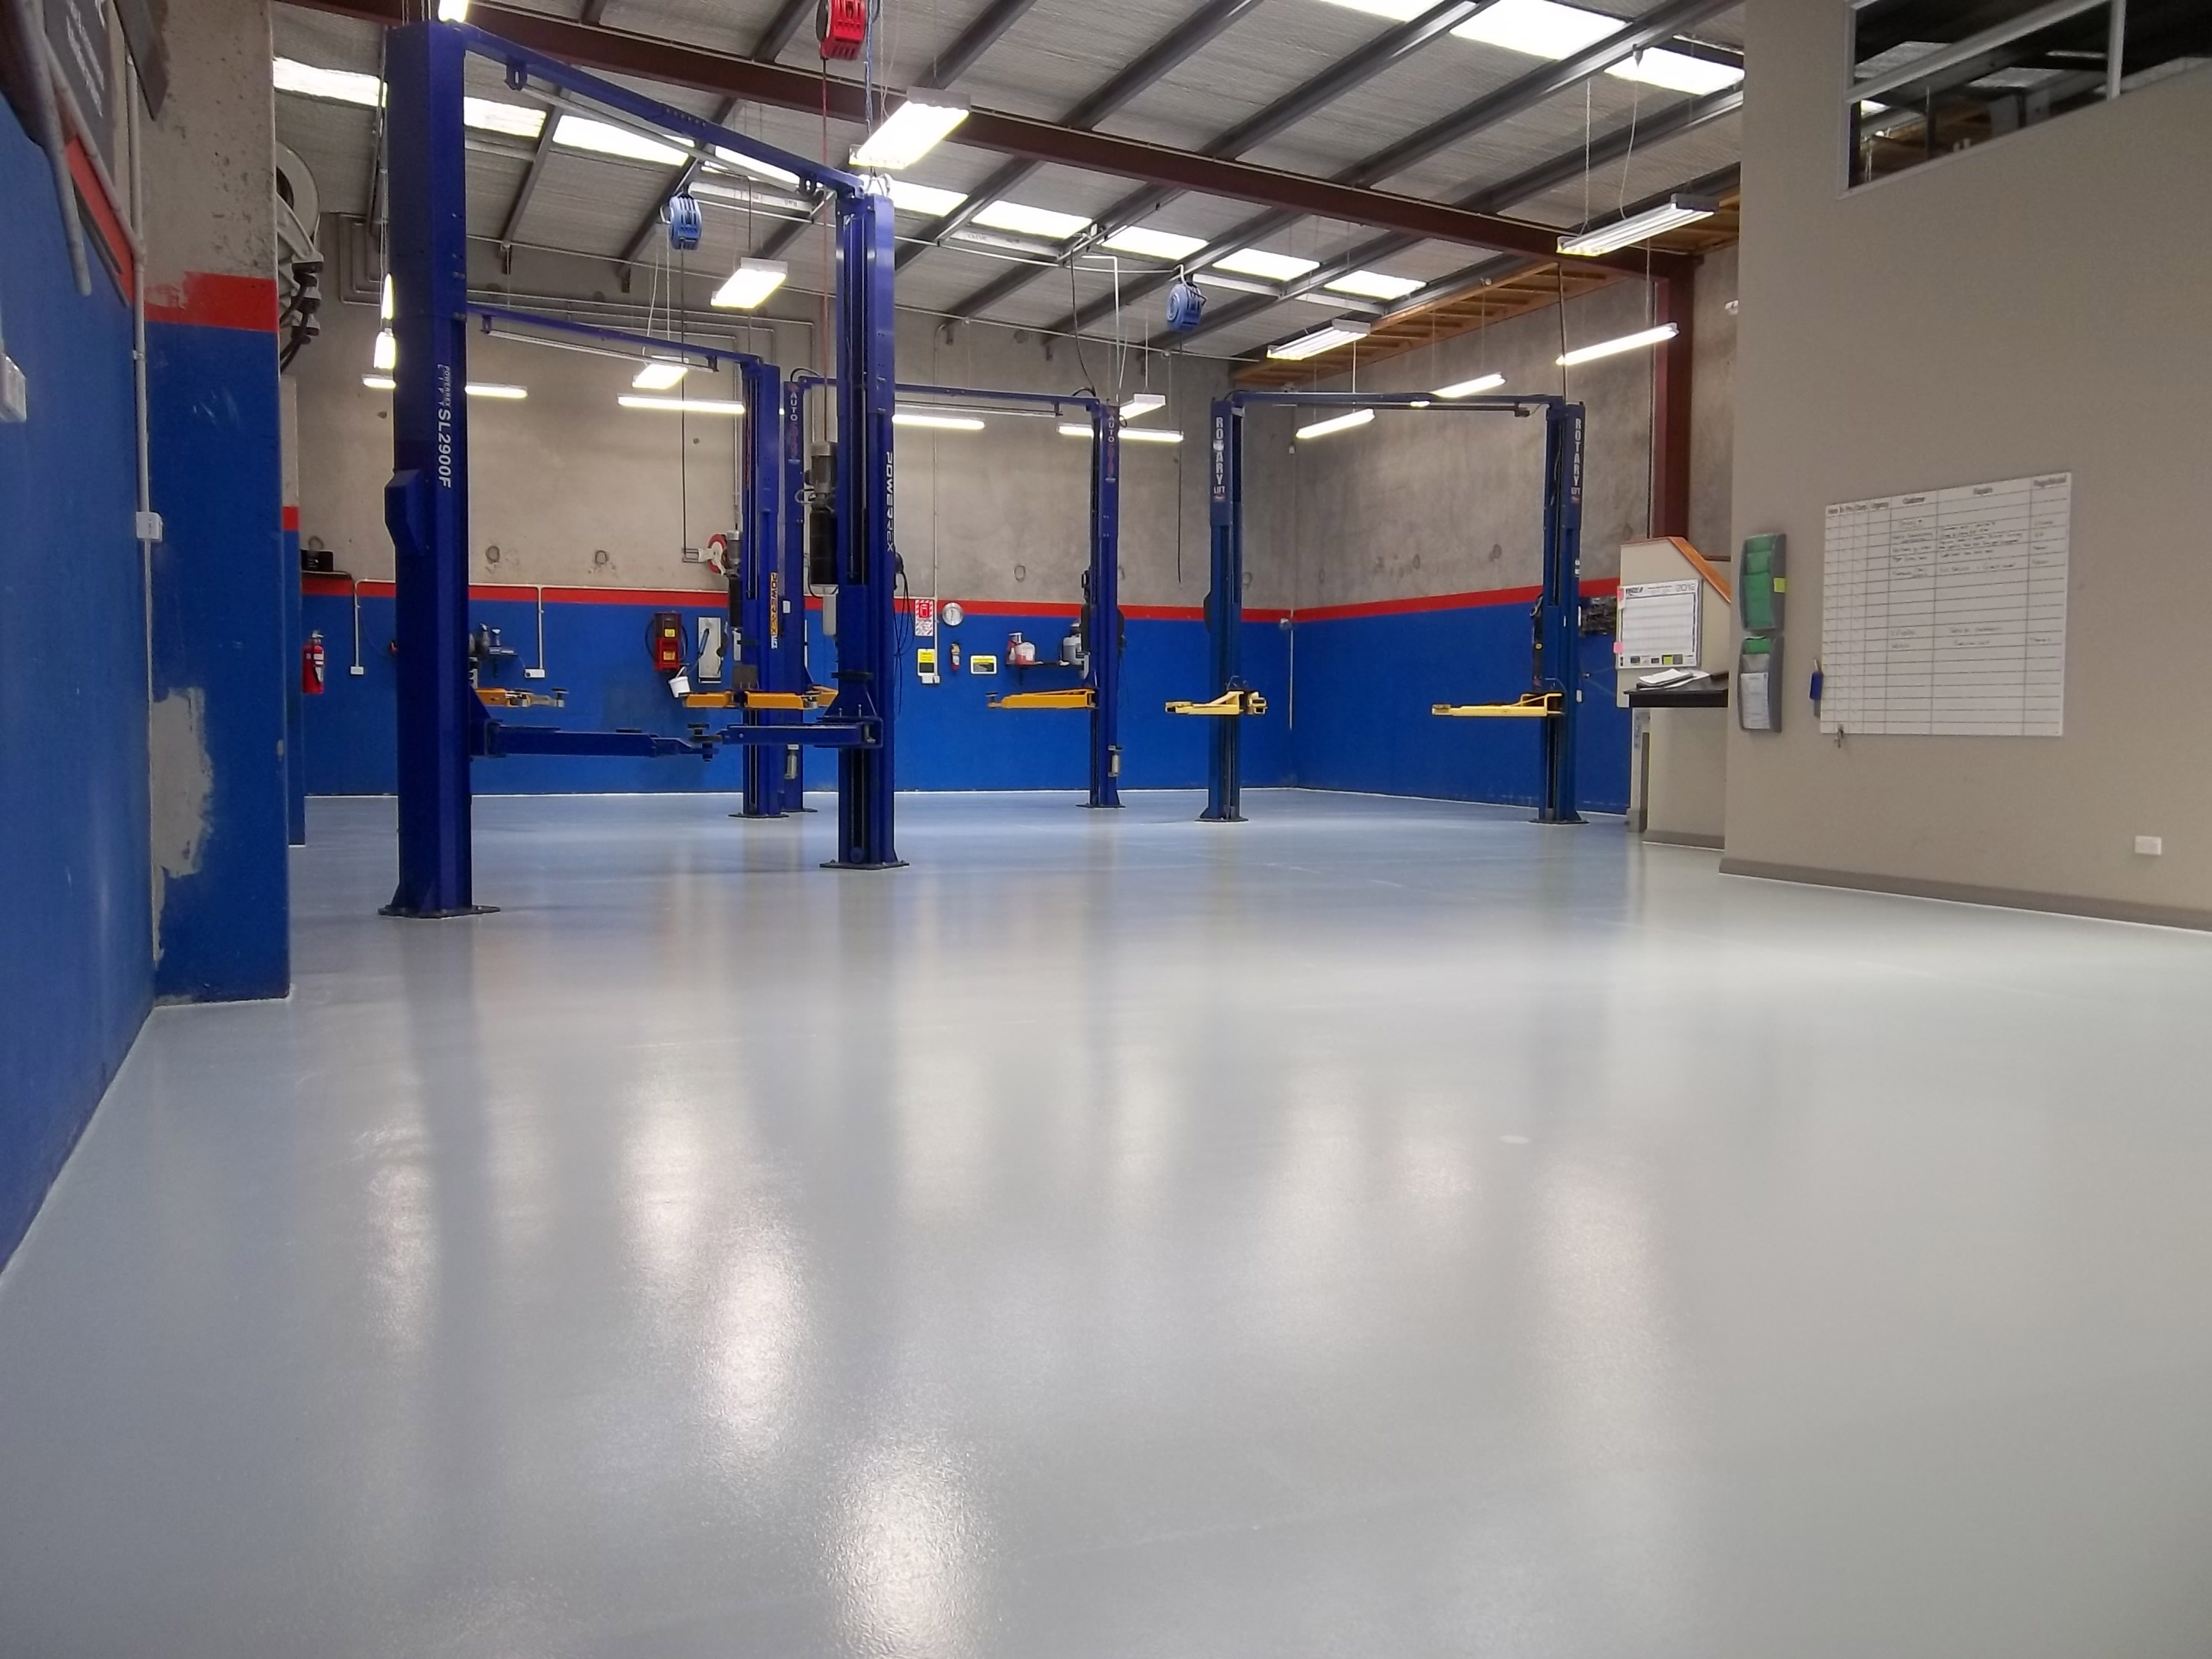 Factory flooring in Christchurch by Profloor 2000 Ltd